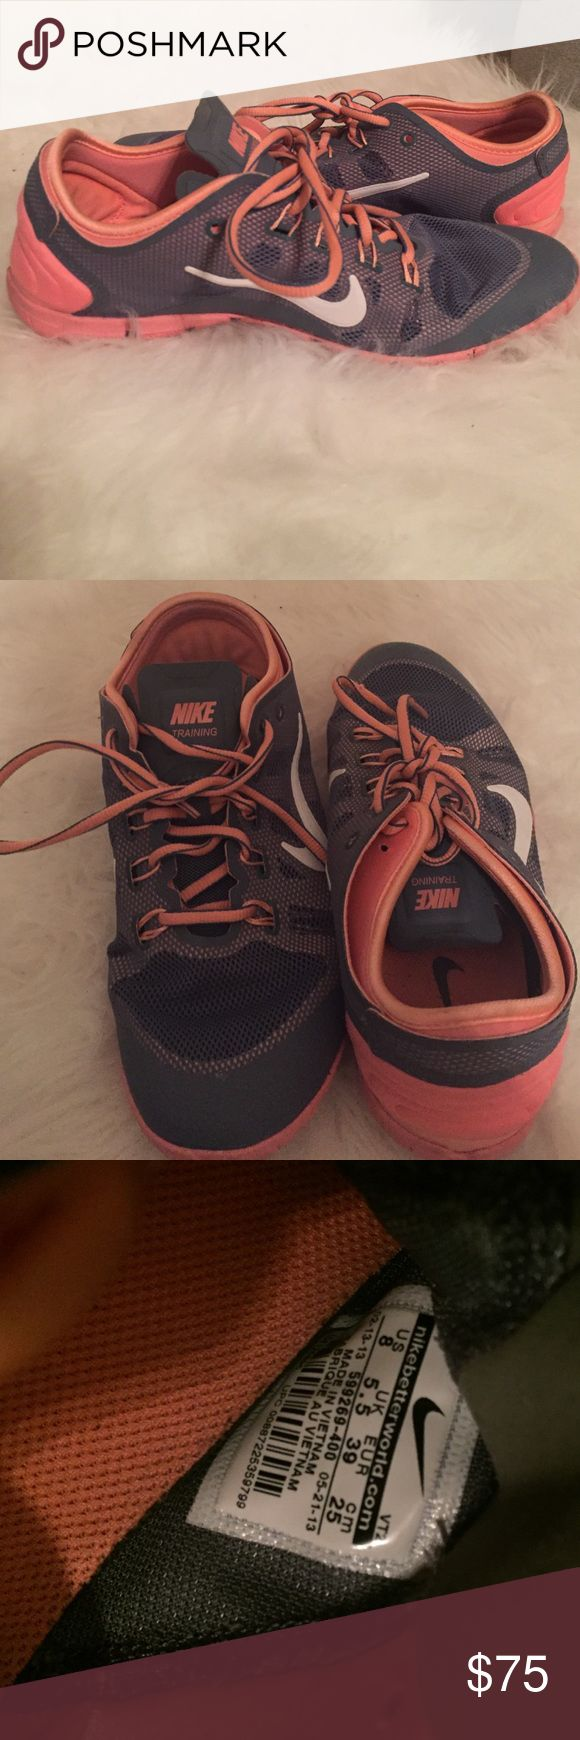 Nike training shoes Gray and pink nike training shoes. Great for weight training. Worn once. Nike Shoes Athletic Shoes